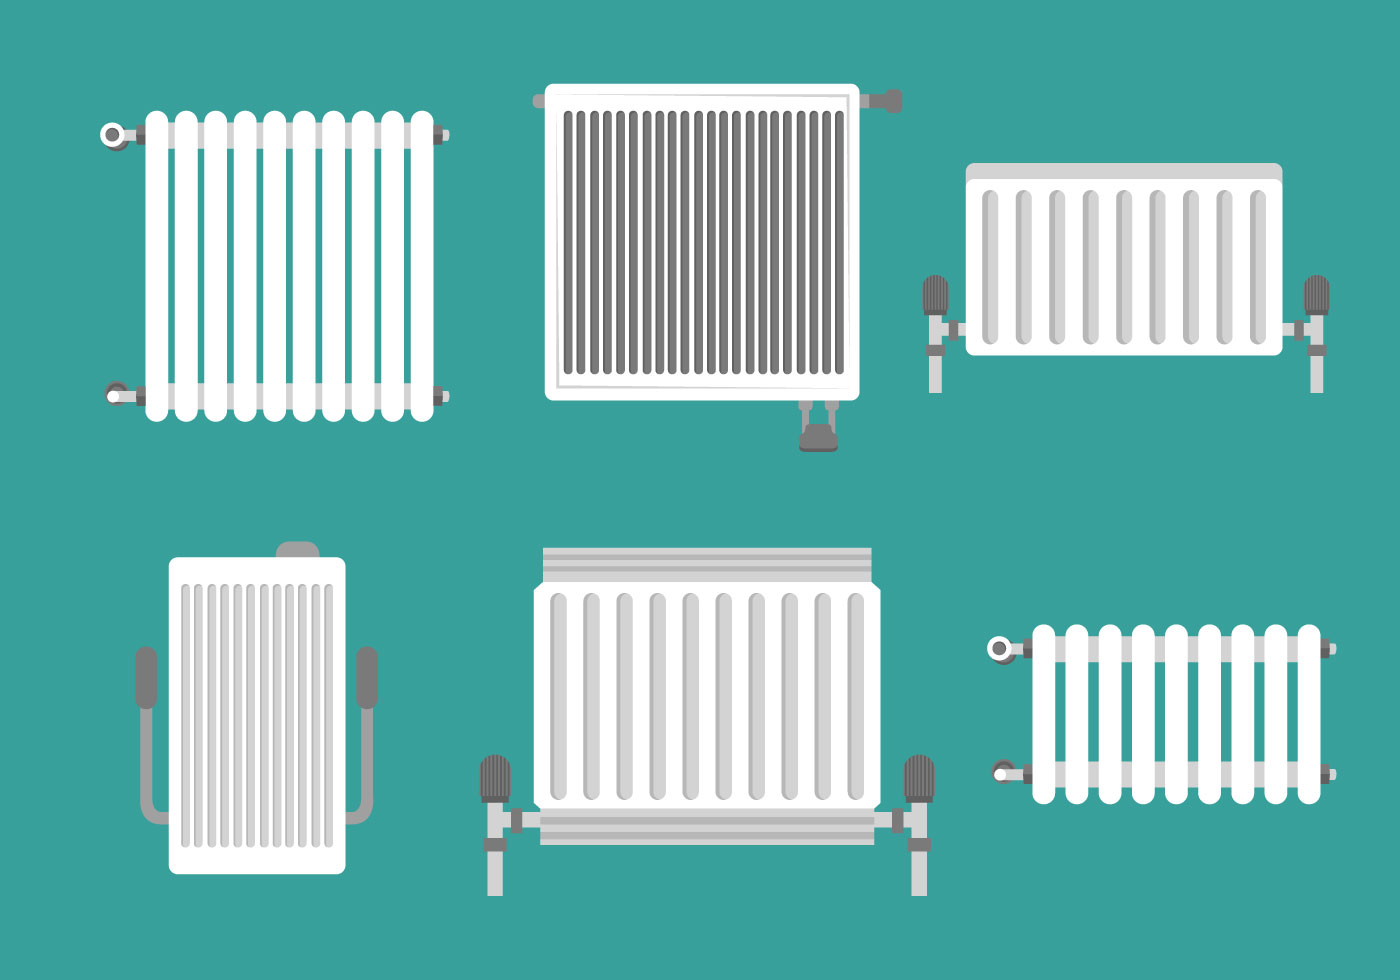 Radiator Vectors - Download Free Vector Art, Stock Graphics & Images